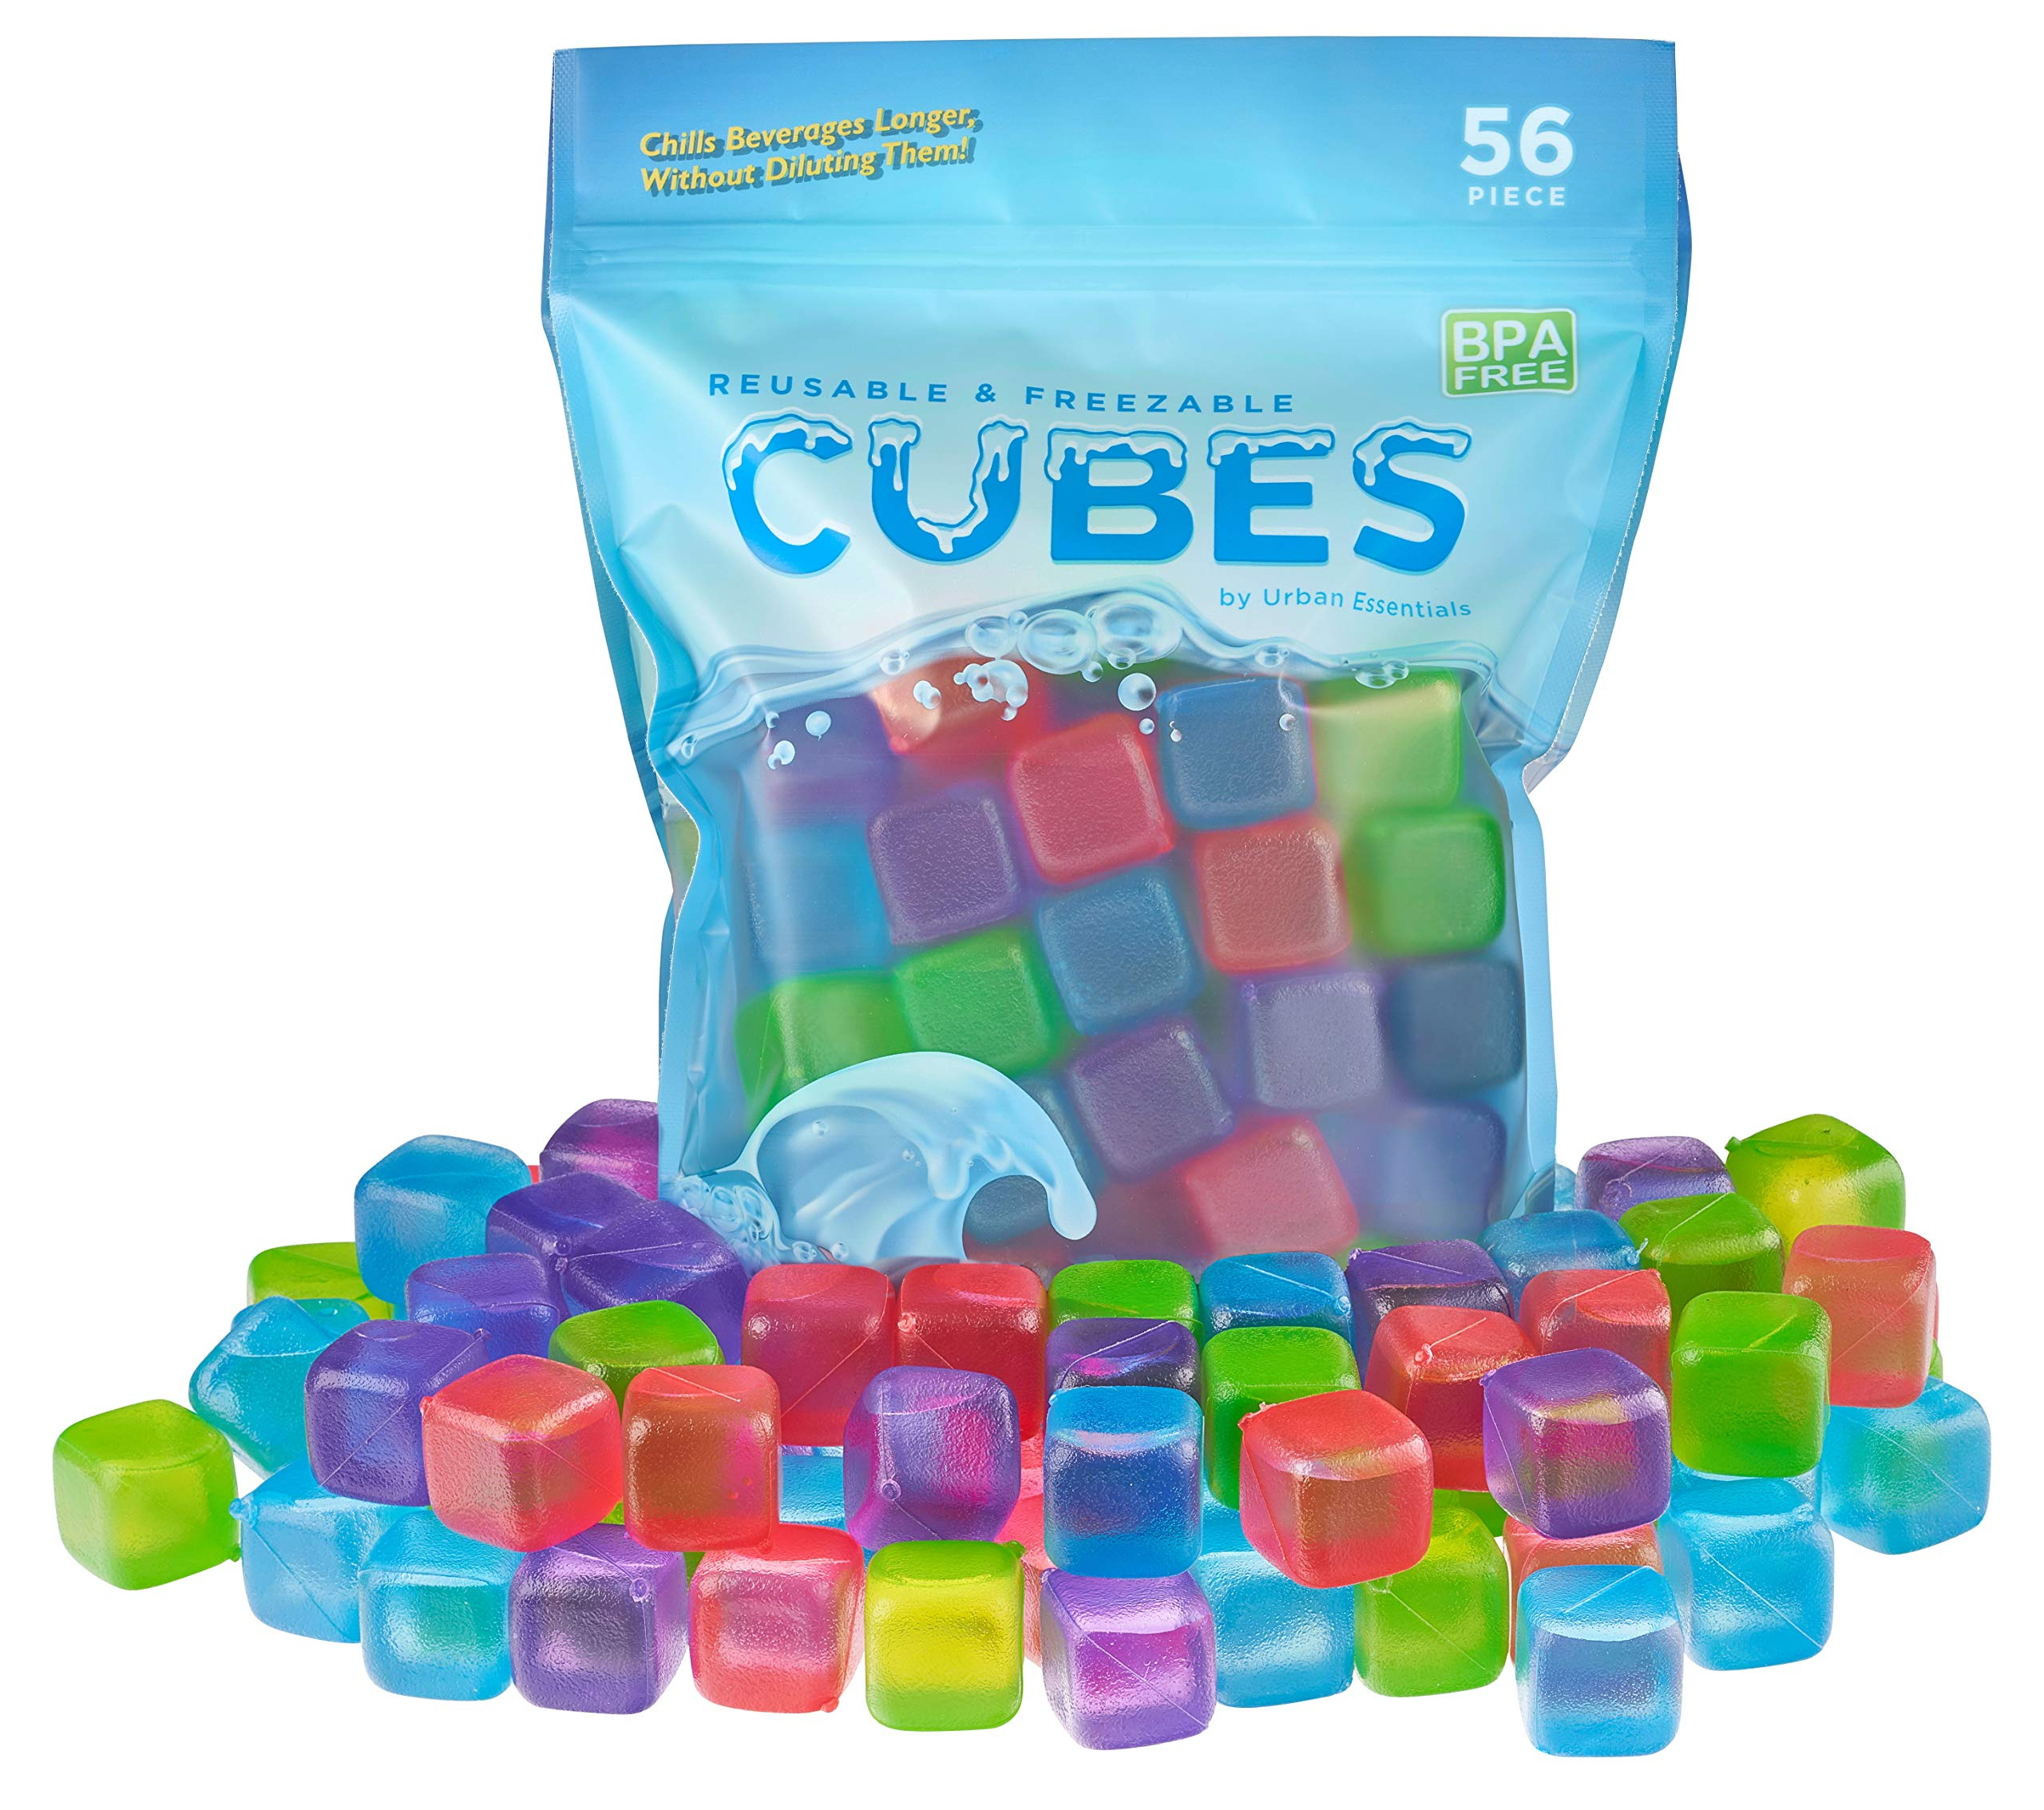 Urban Essentials Reusable Ice Cubes - Quick Freeze Colorful Plastic Square Icecubes With Resealable Bag Assorted Colors Pack Of 56 by Urban Essentials